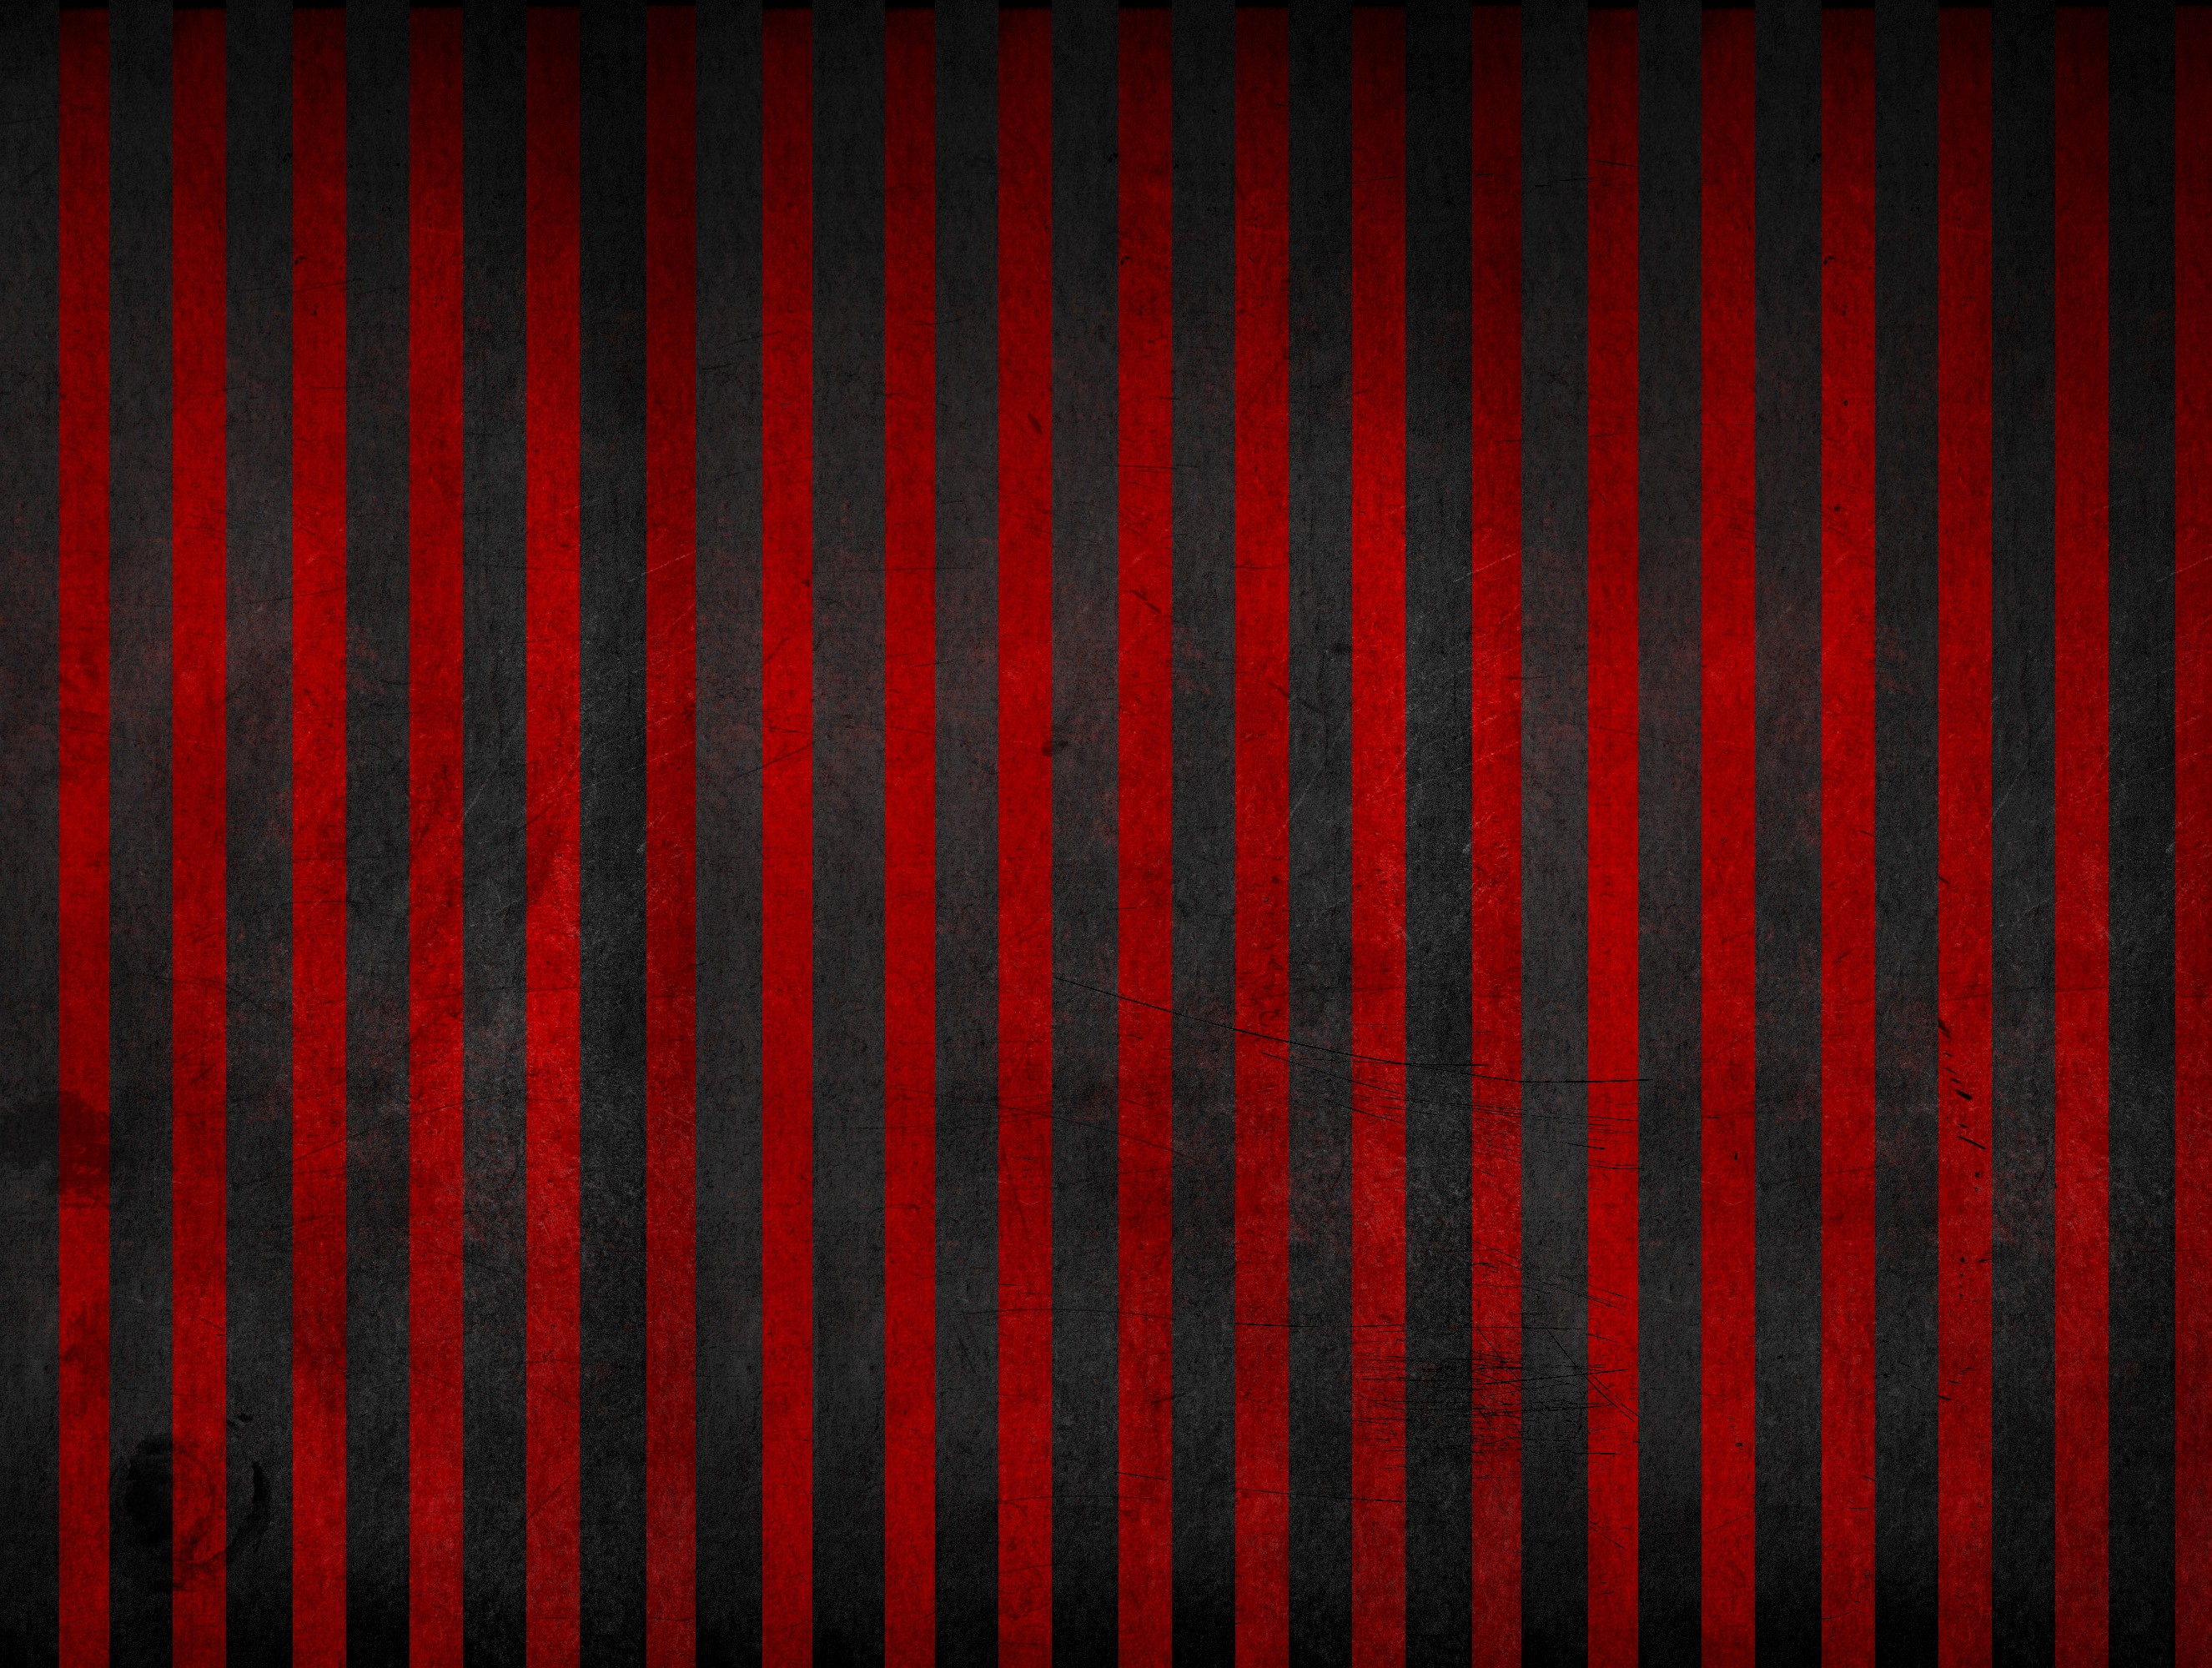 Red Black Background Download Free Beautiful Full Hd